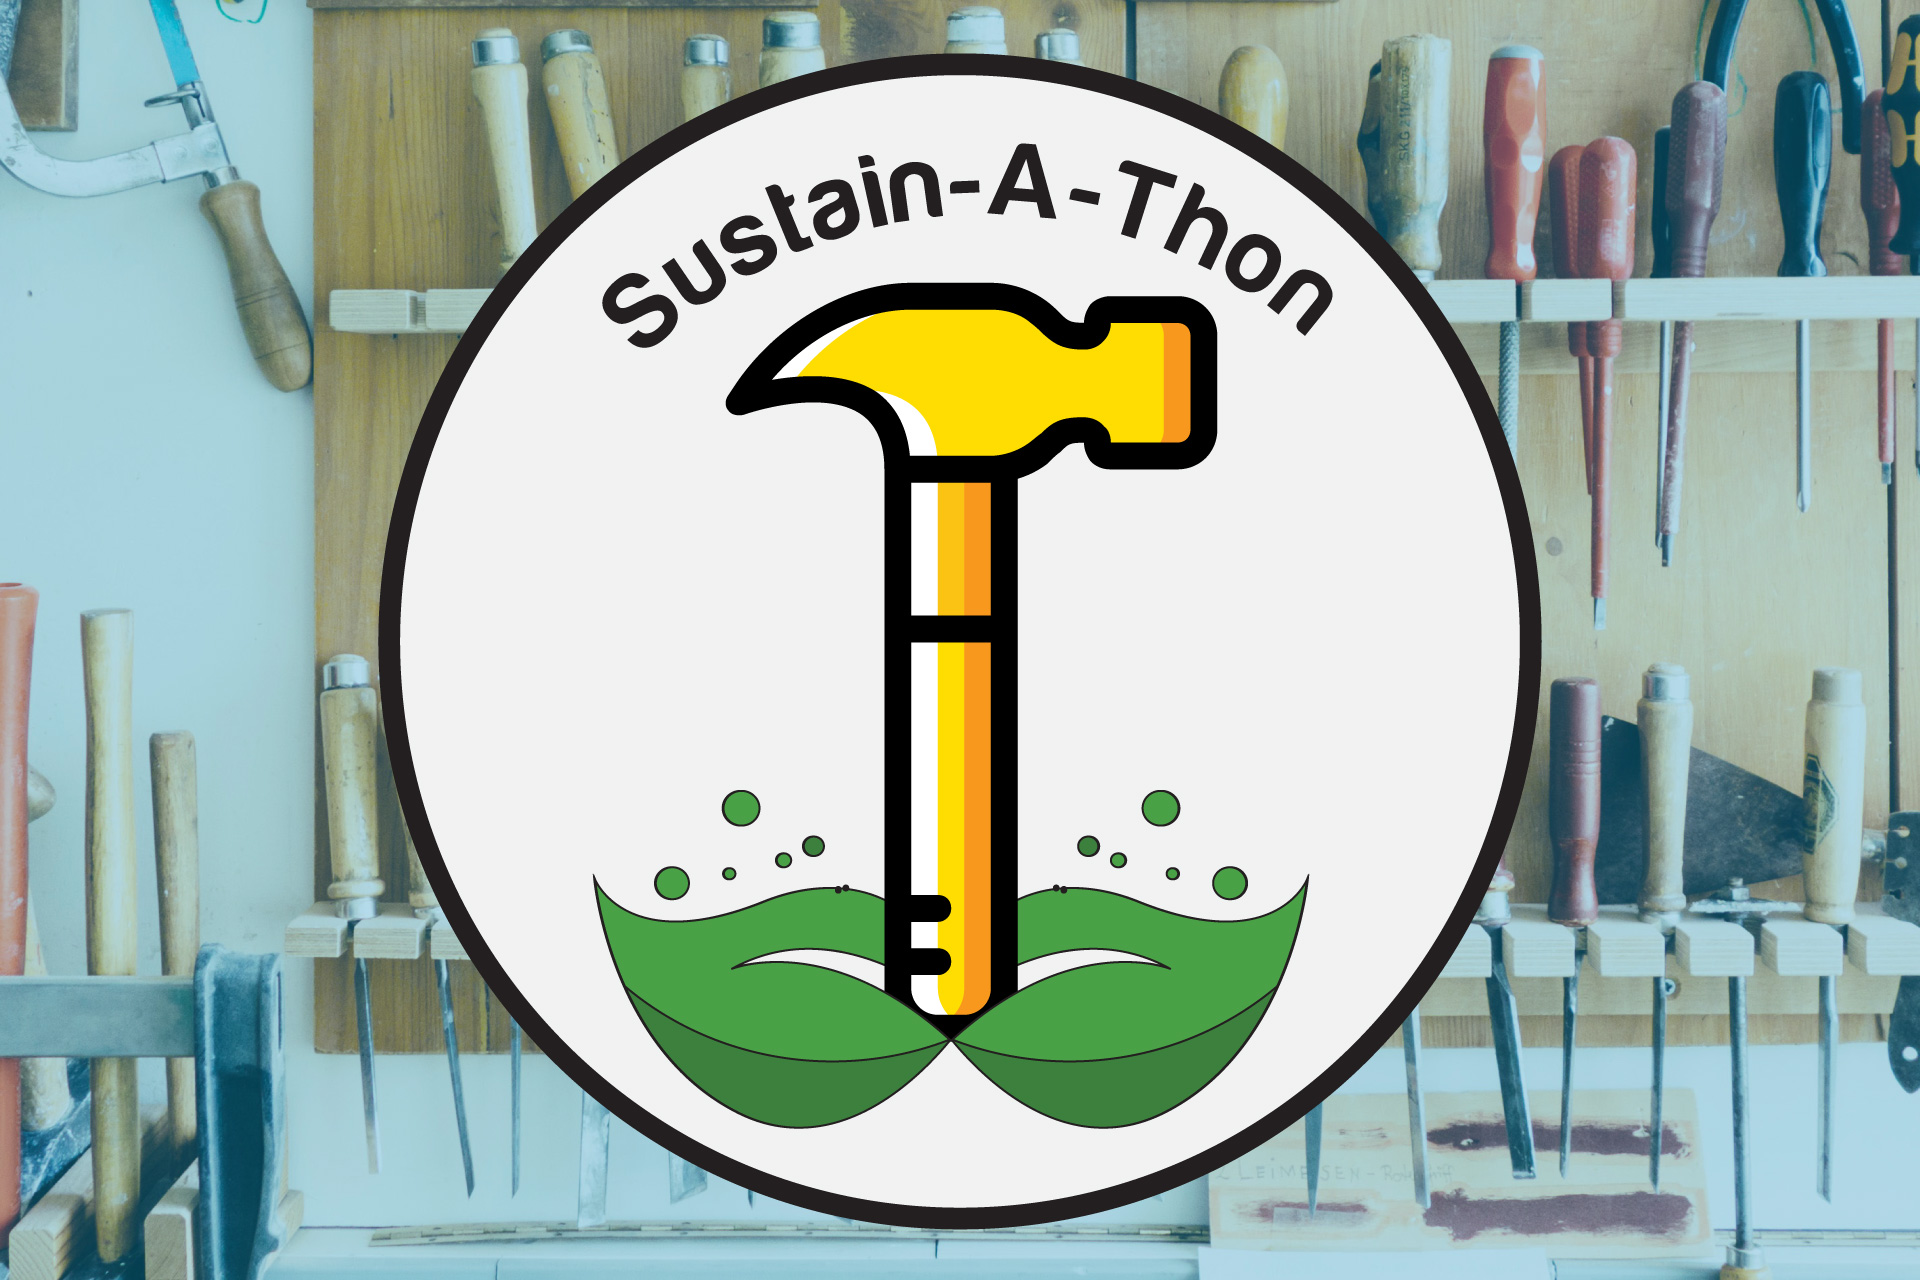 Sustain-A-Thon